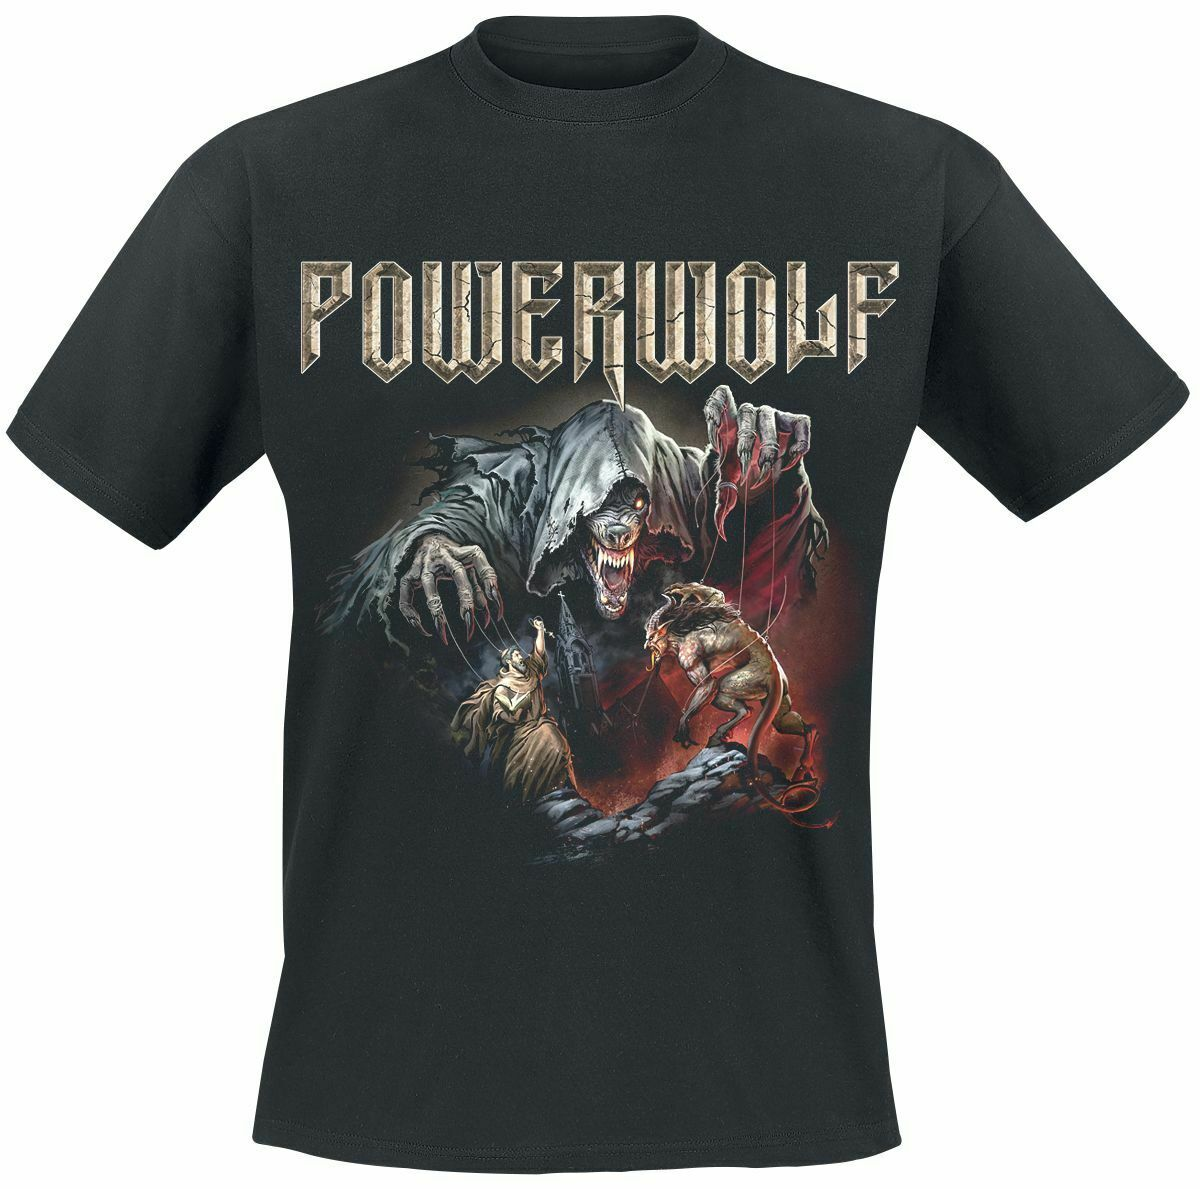 Powerwolf The Sacrament of Sin T-Shirt Black T Shits Printing Short Sleeve Casual O-Neck Cotton Basic Models Top Tee Plus Size